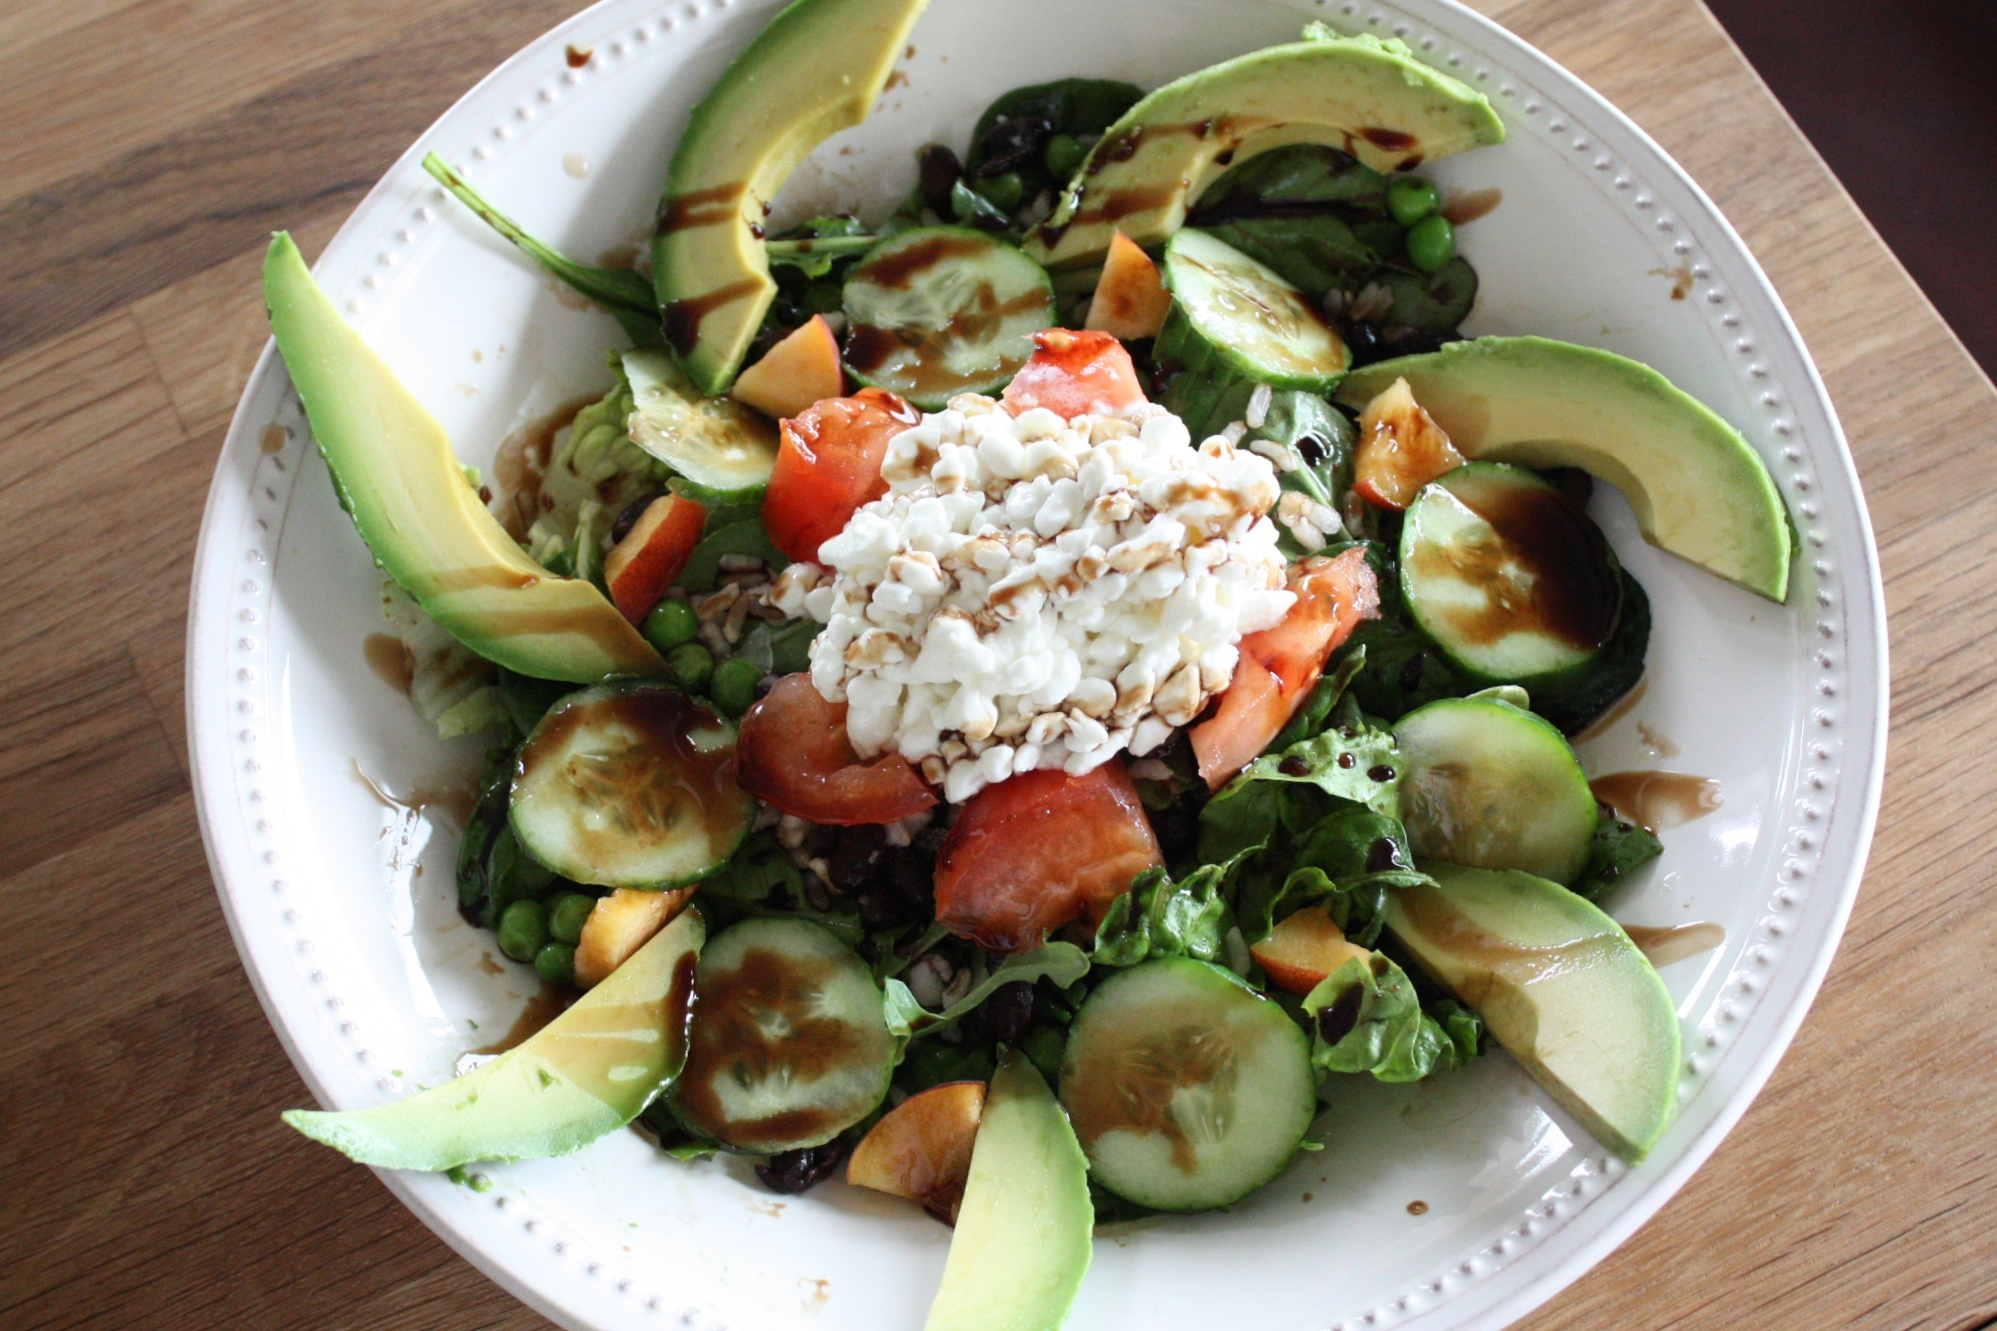 salad with cottage cheese and veggies